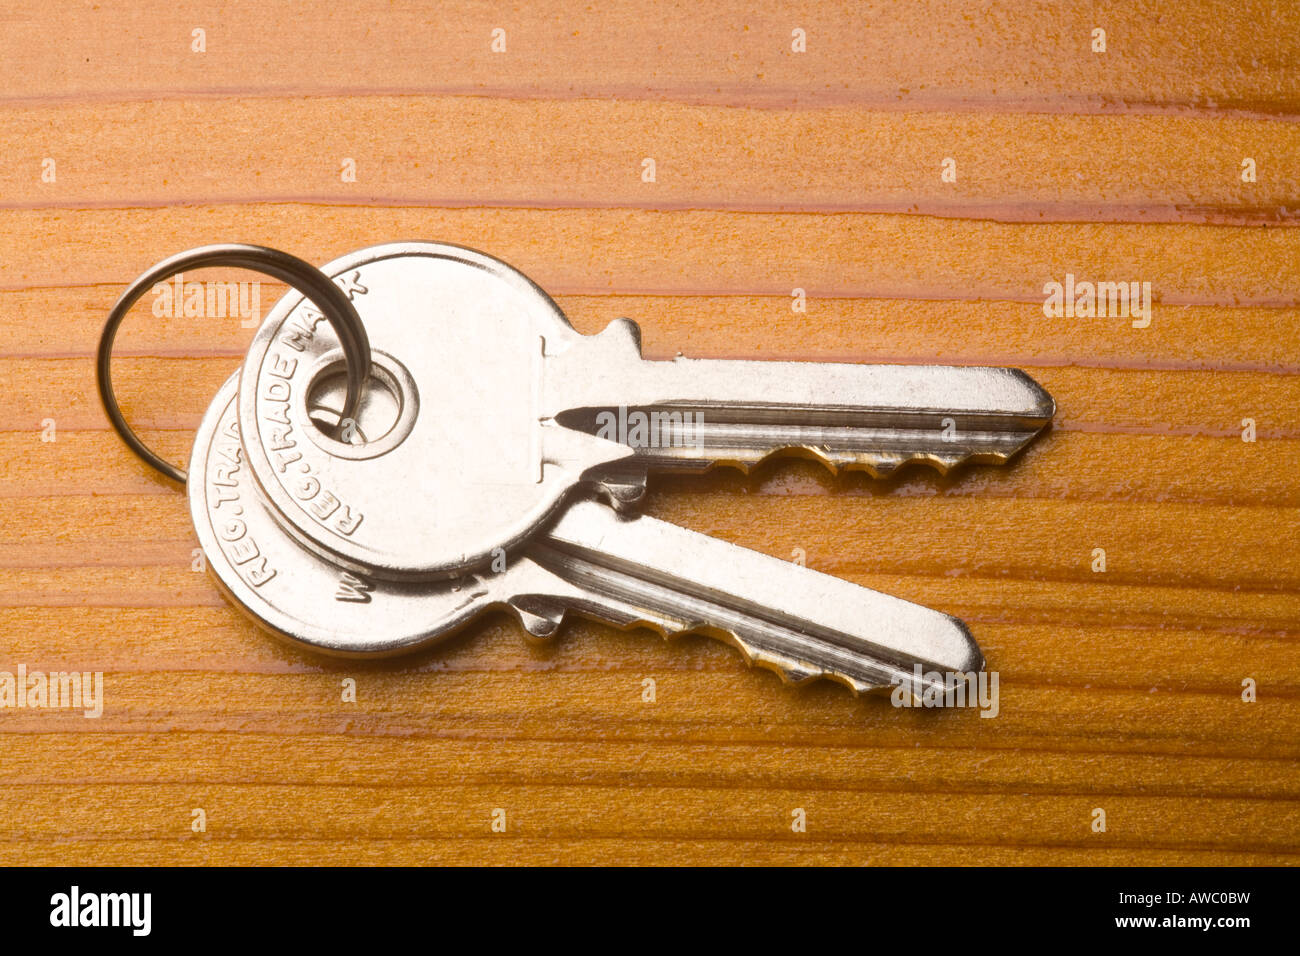 Pair of house keys on wooden table Stock Photo: 16533132 ...